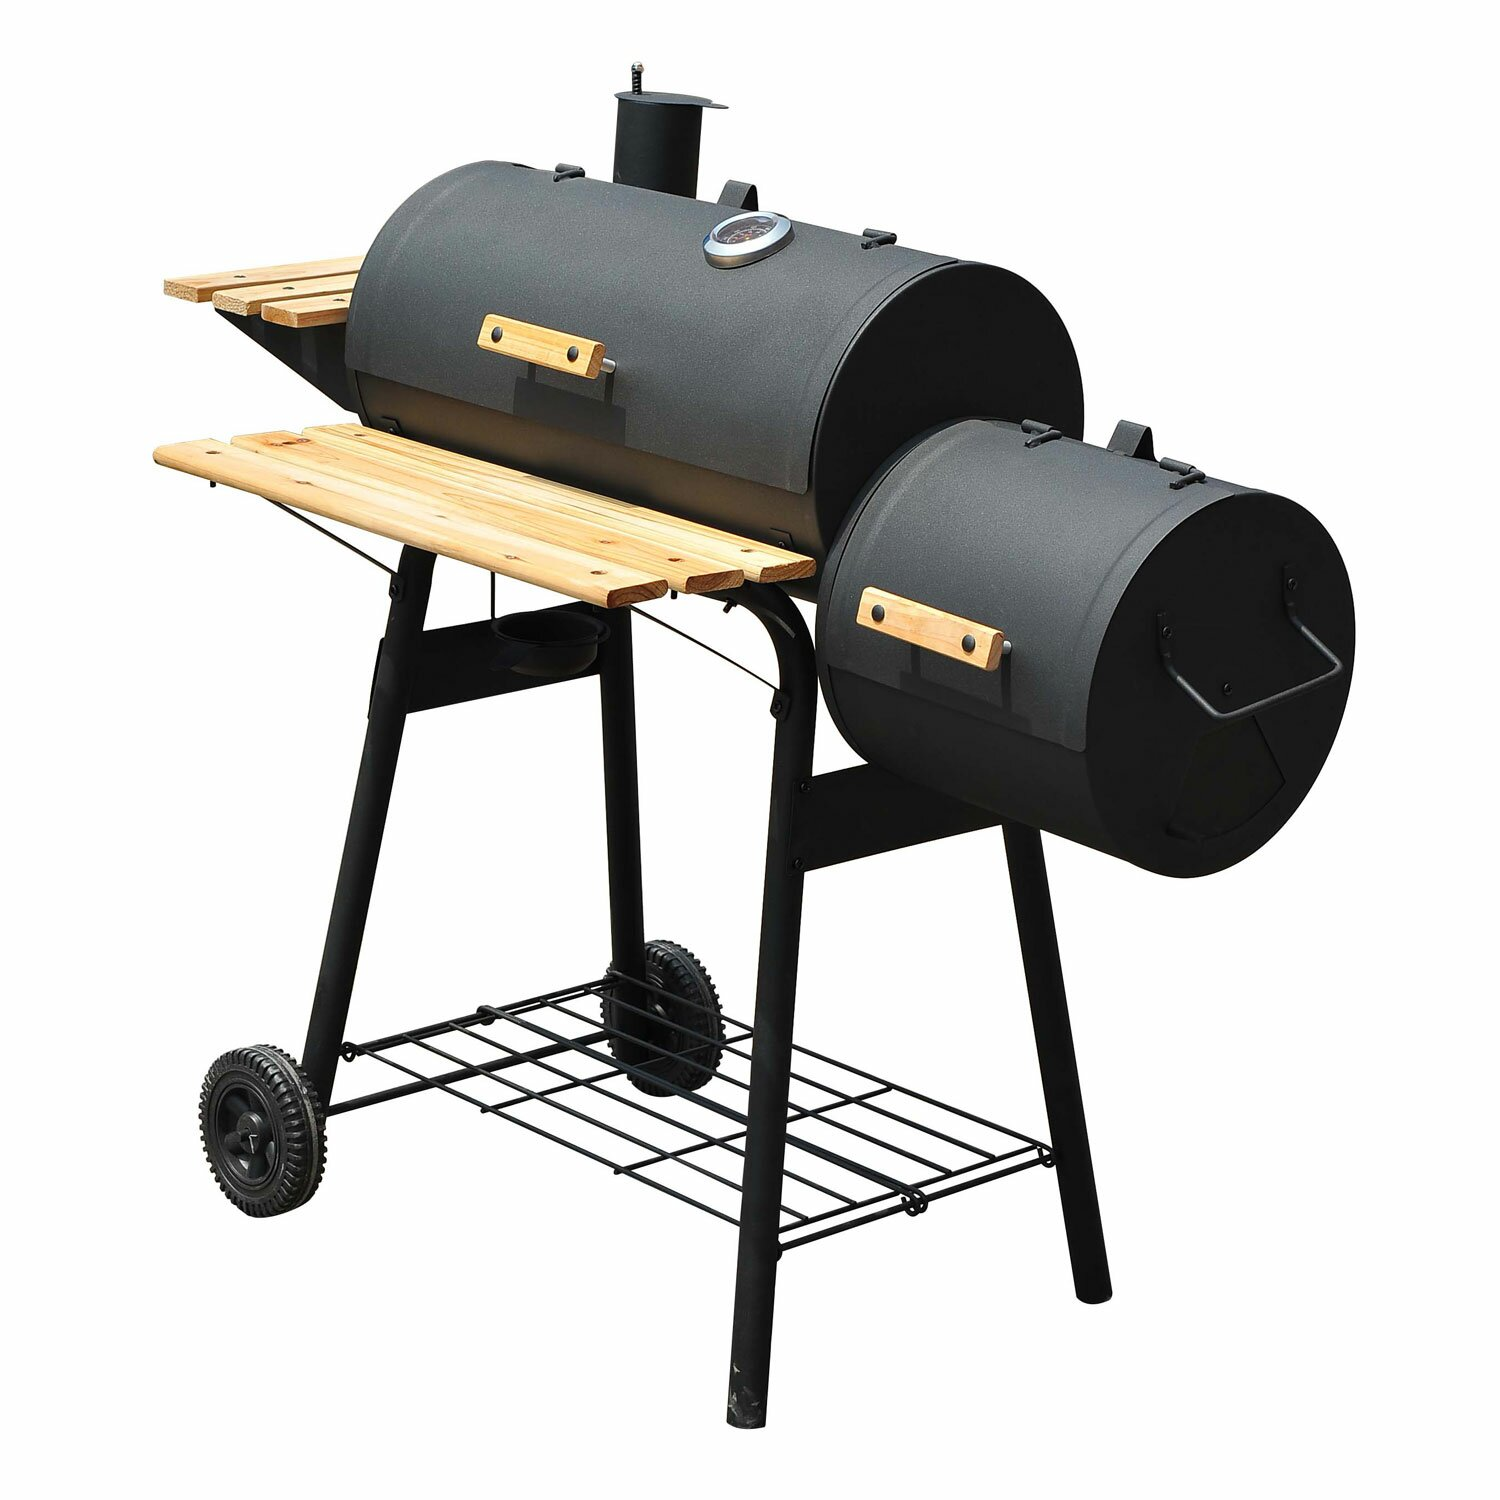 Patio Charcoal Grill 48 Backyard Charcoal Grill With Wheels Wayfair .